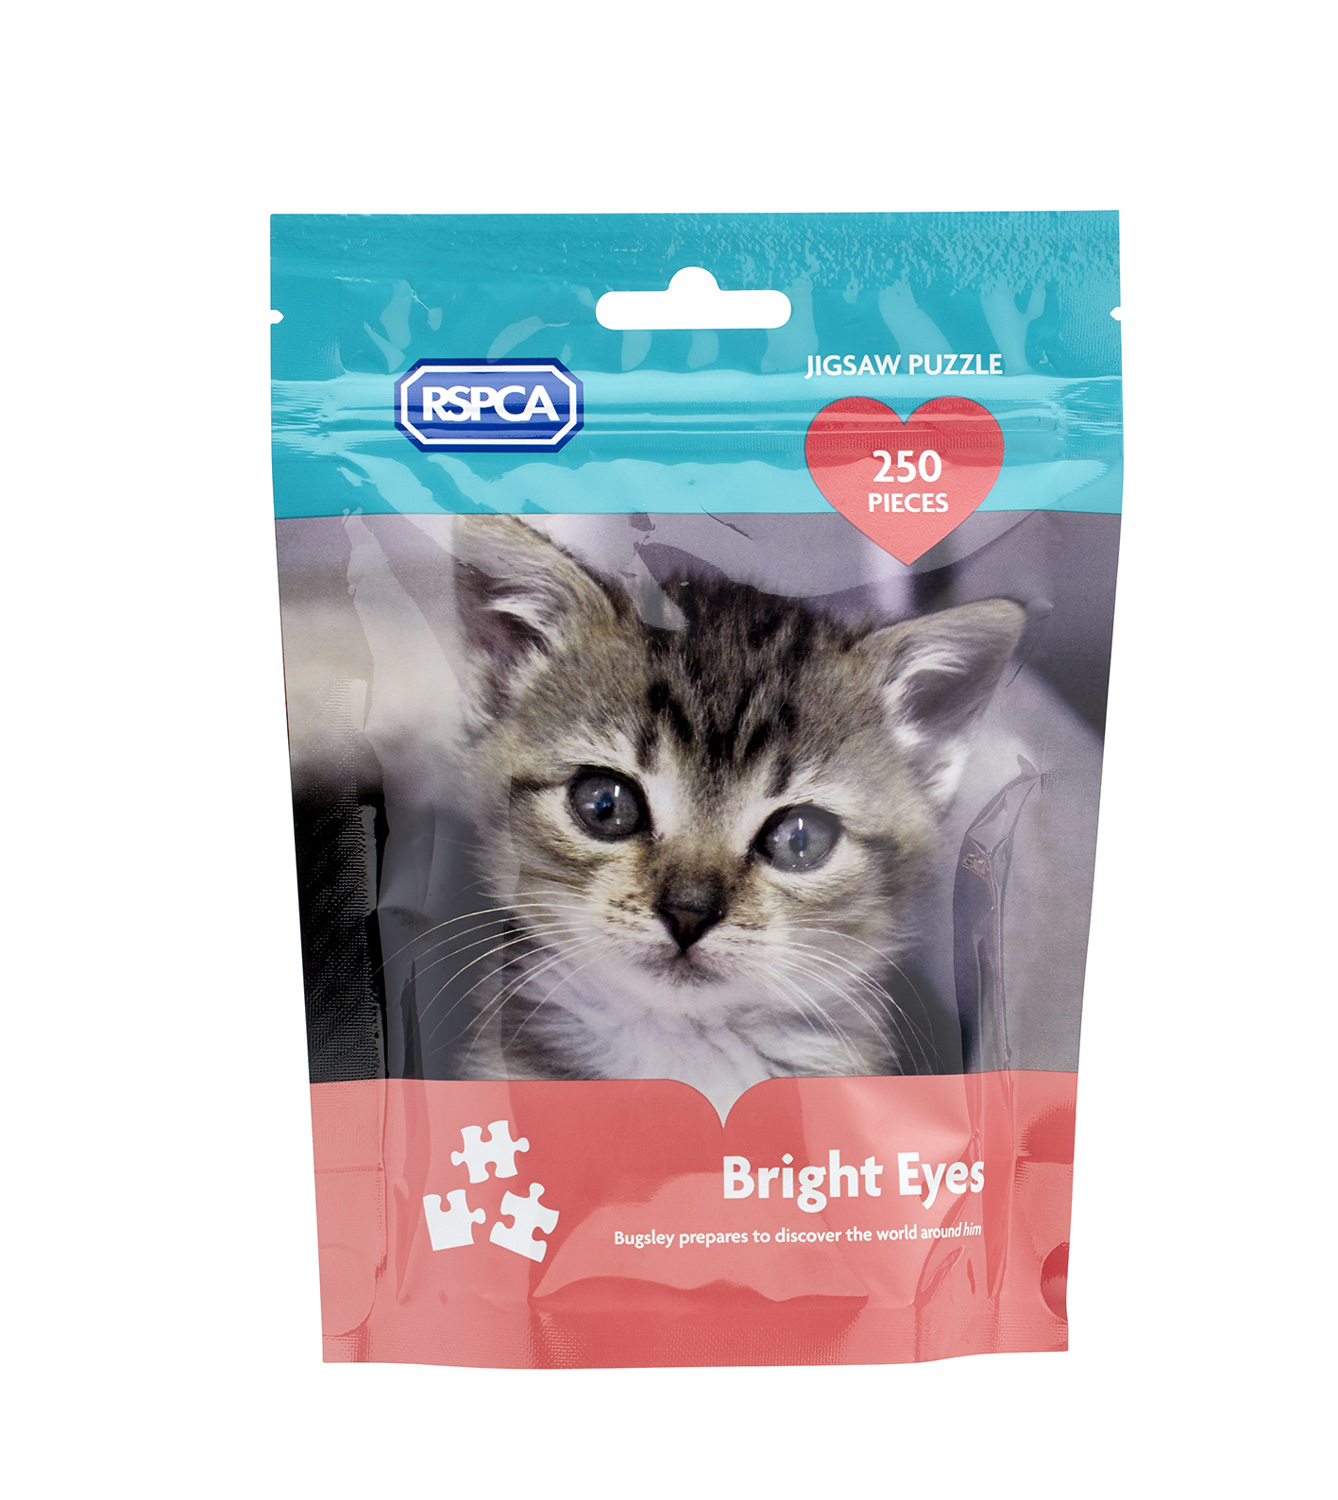 RSPCA Bright Eyes